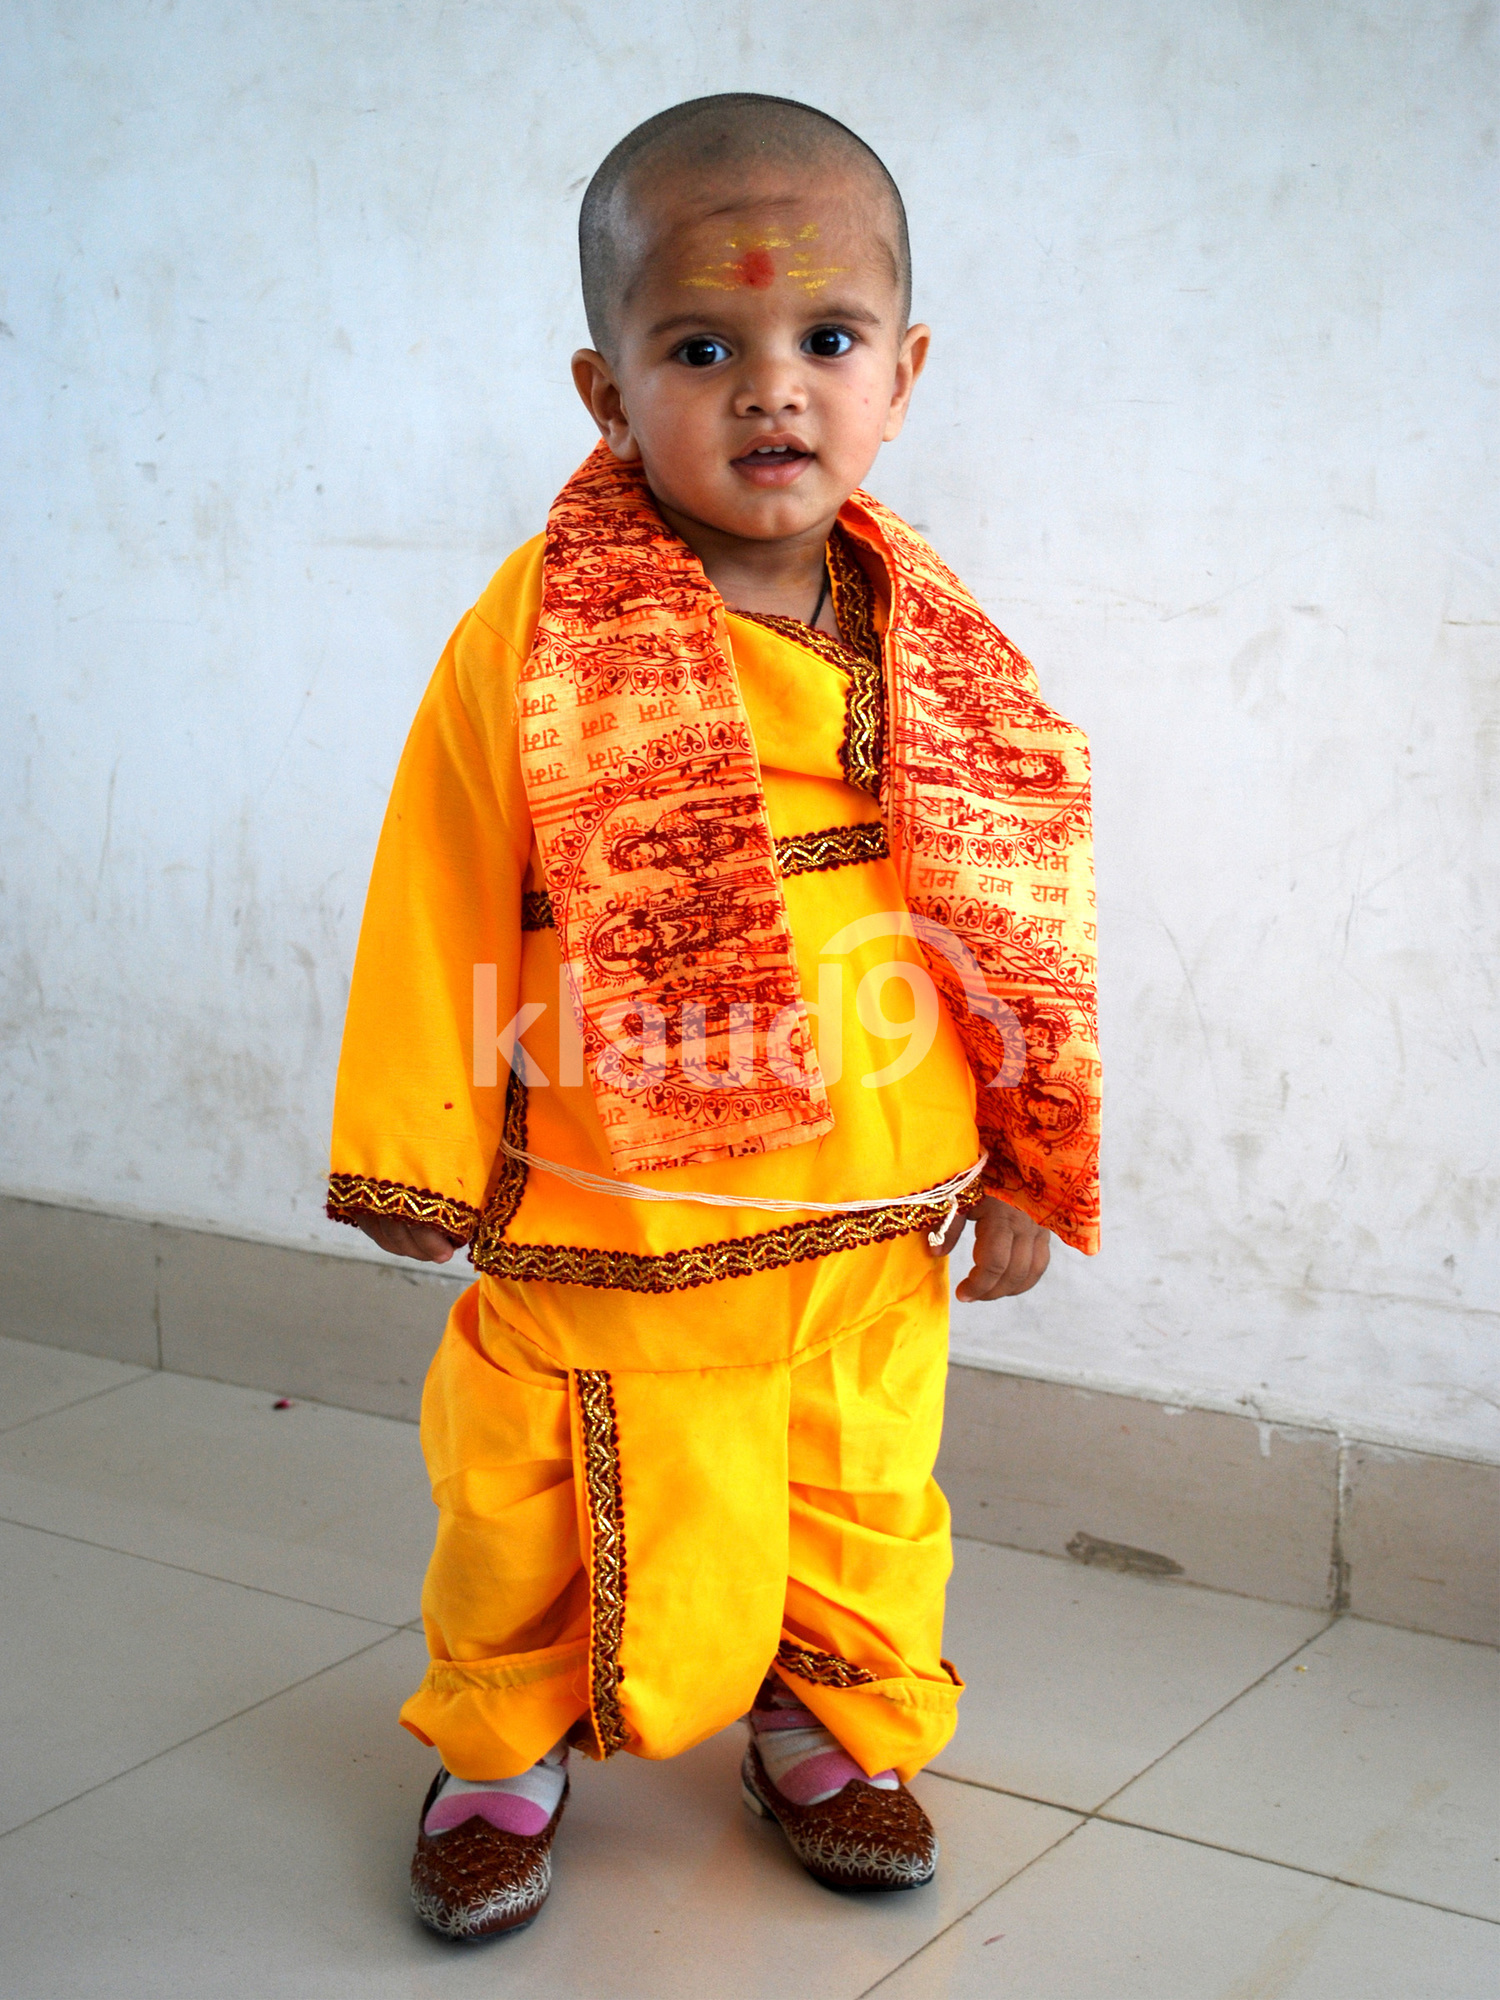 The young Pandit